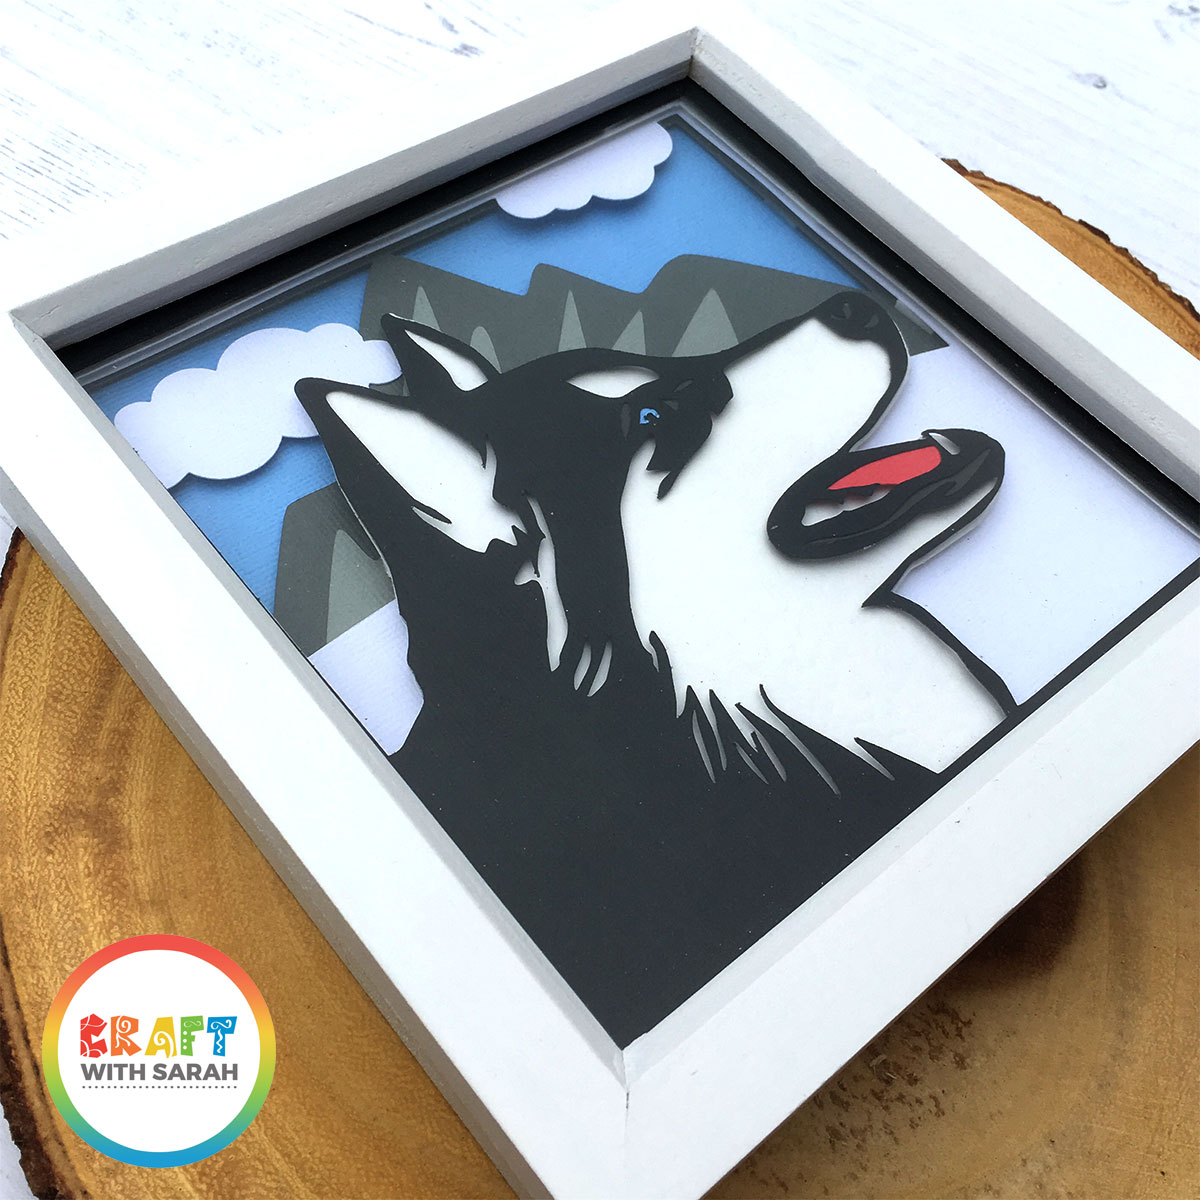 Free SVG cutting file of a husky dog in the snow with mountains